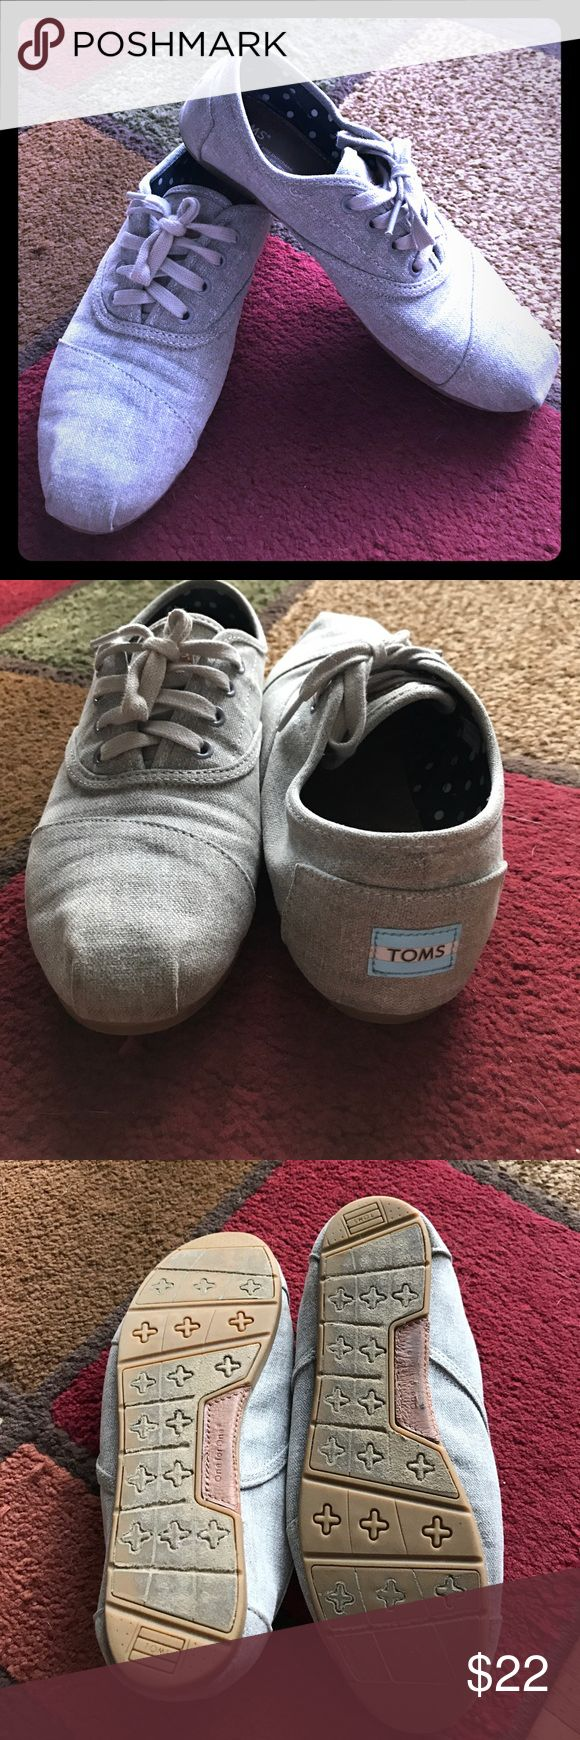 Toms!! Gray Toms shoes...bought from another posher, love the shoes just never wore them. Good condition. Toms Shoes